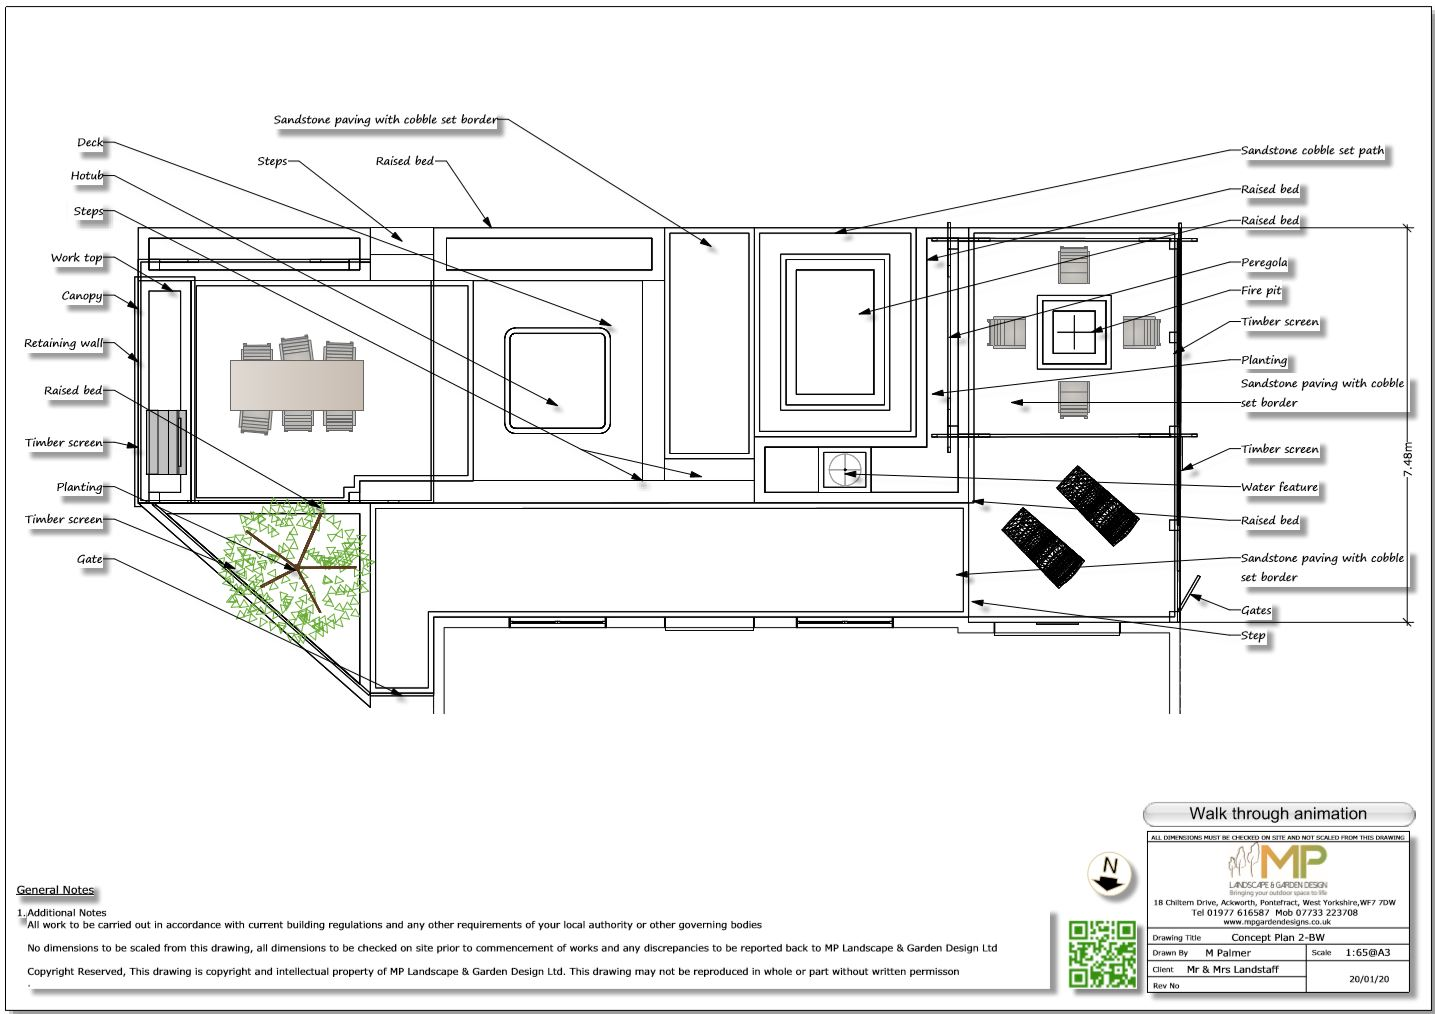 5. Concept-2 plan for a rear patio area in Wakefield